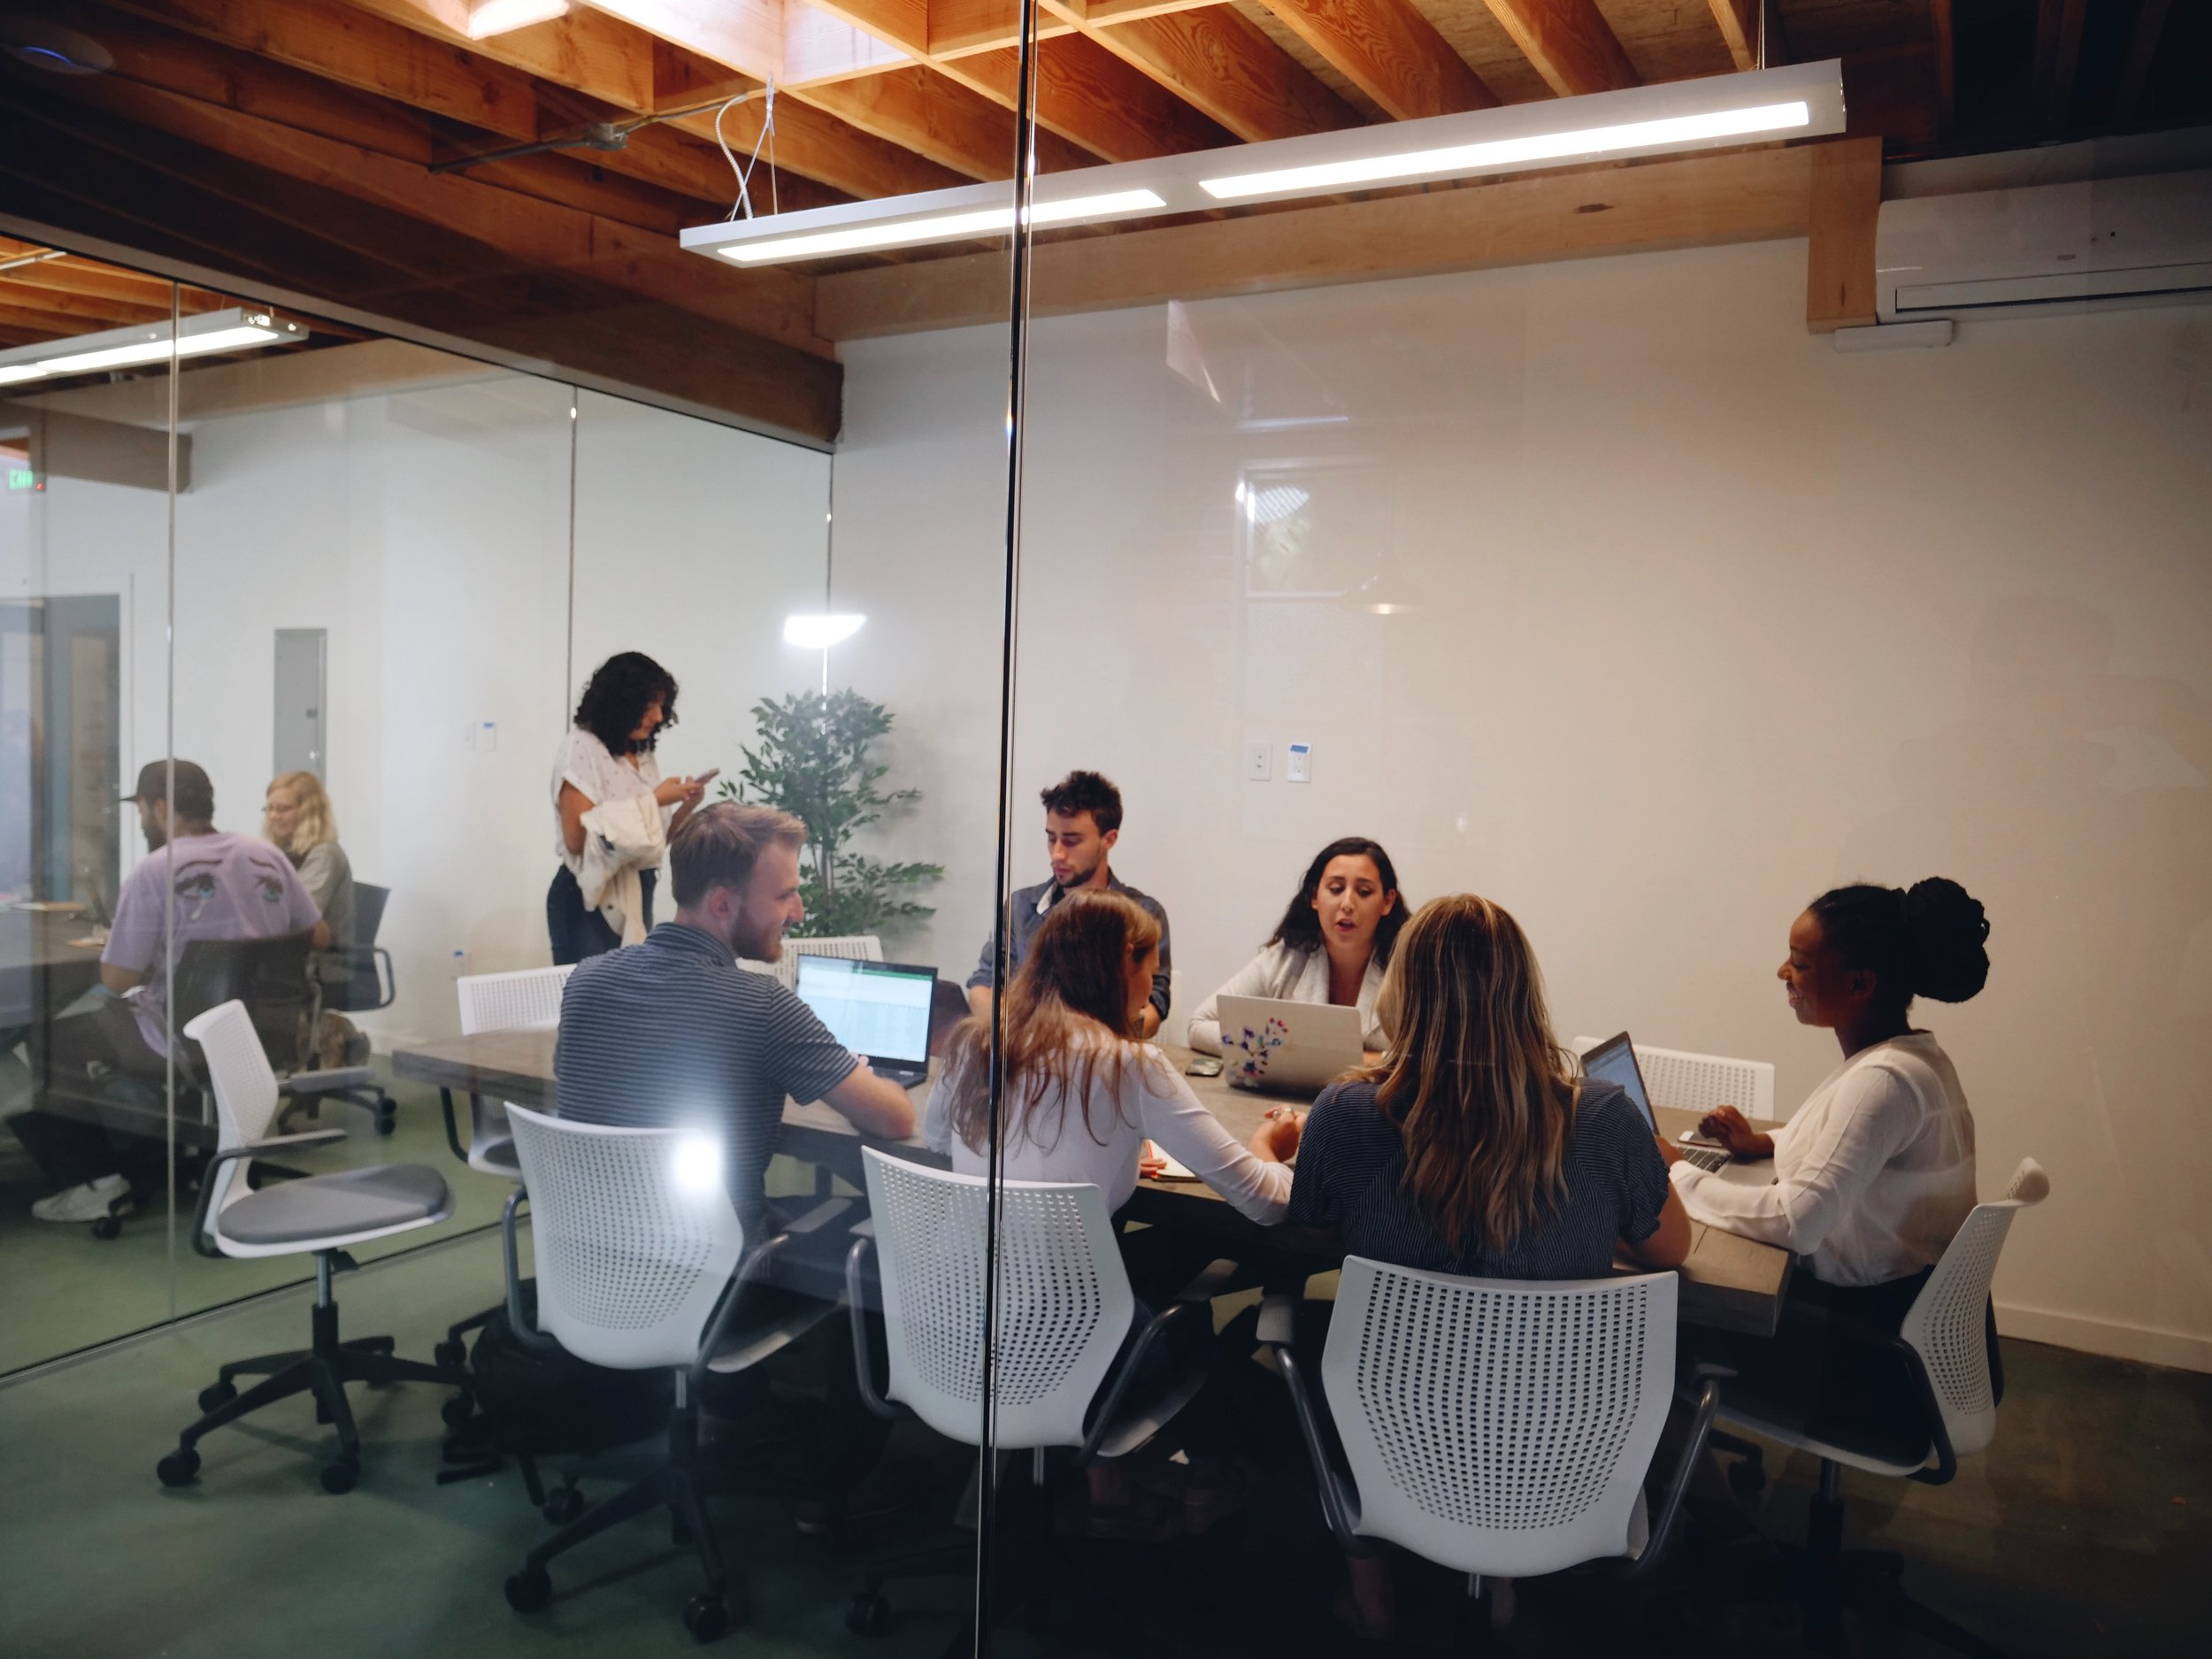 Private Office - Secured glass enclosed office perfect for teams of 2-6. Starting at $1,500/mo